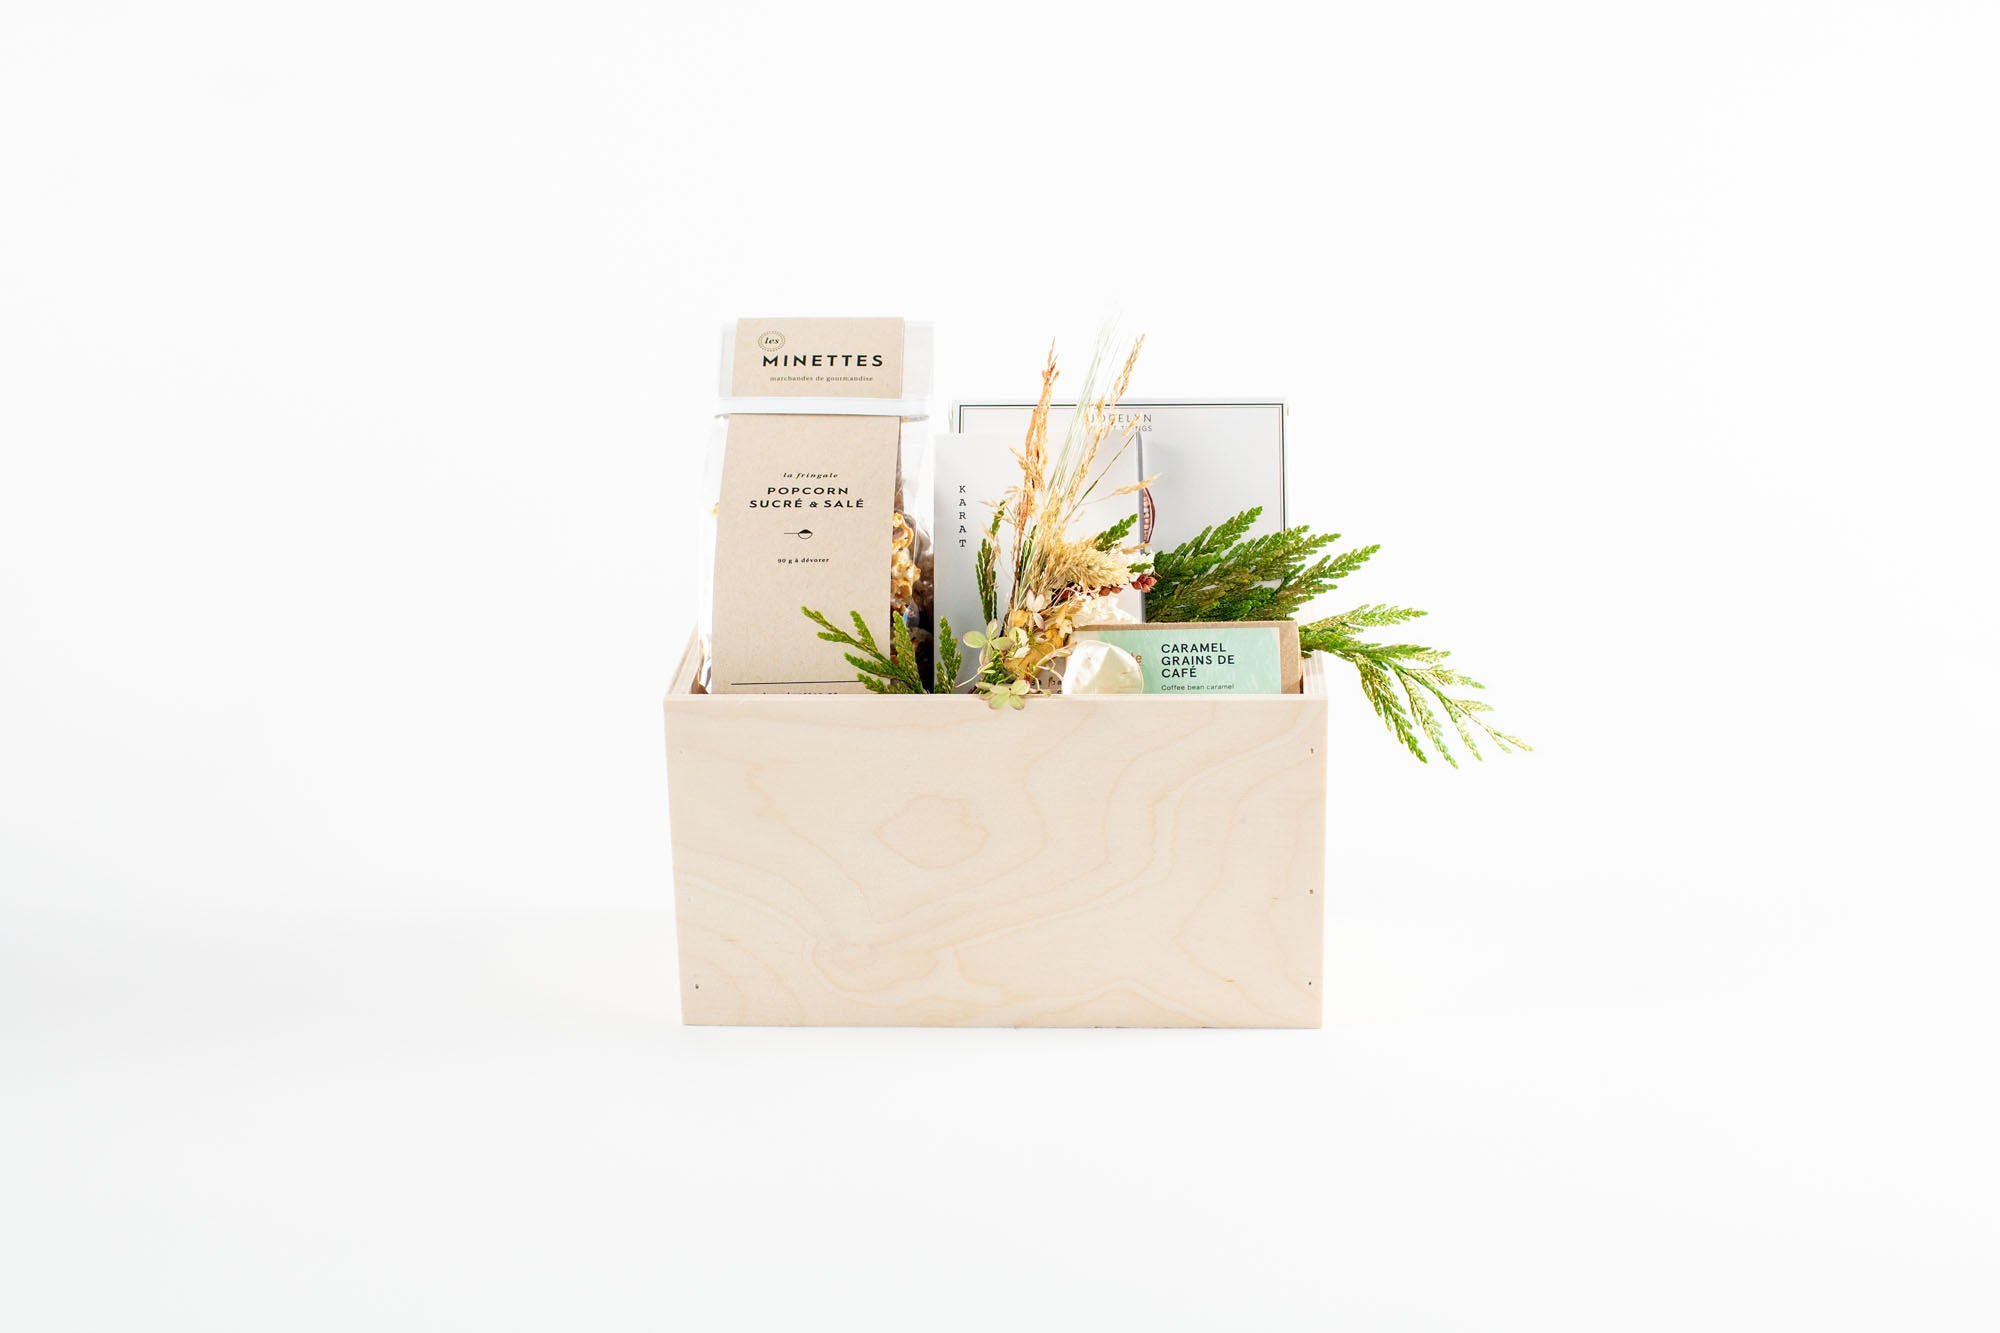 F R E S S - Old Joy Gift Boxes